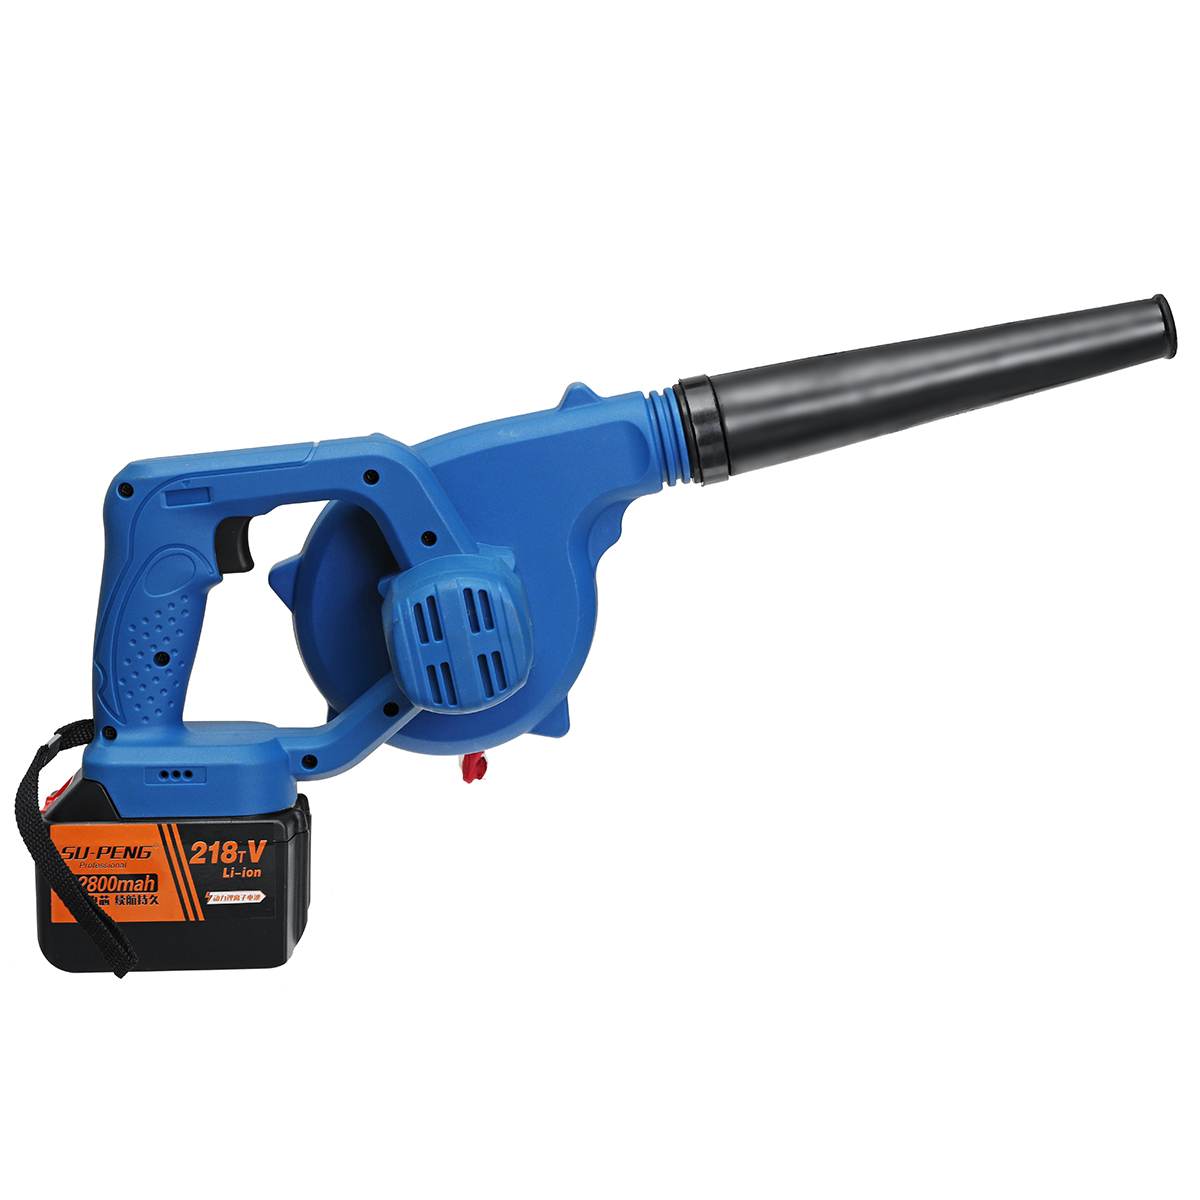 900W Portable 18000RPM Air Blower 168V/198V/218V Cordless Chargeable Dual Function Blower